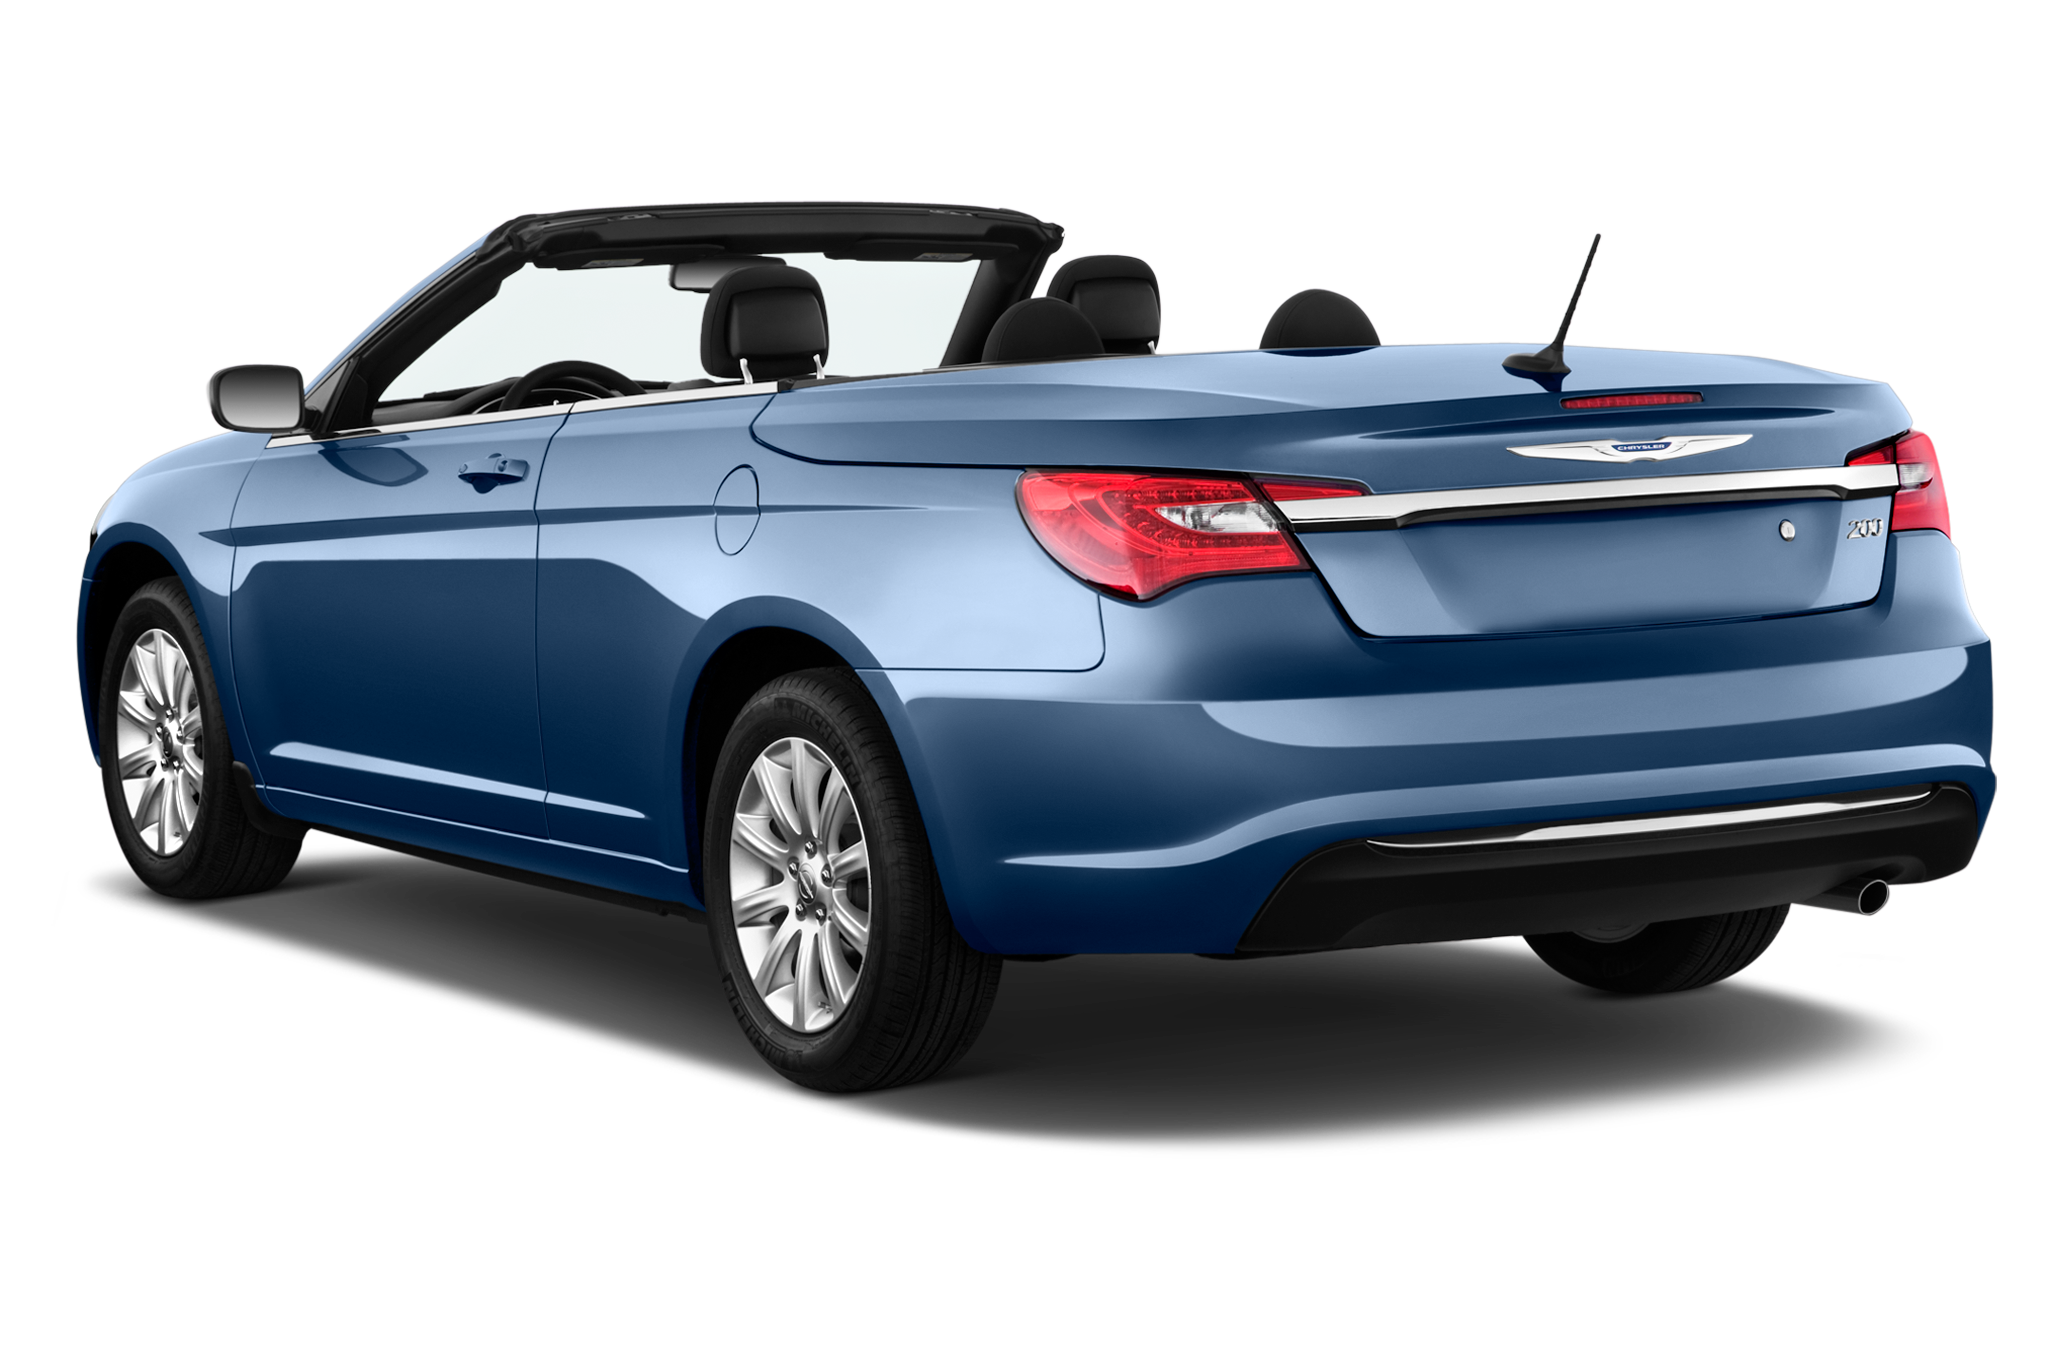 2012 Chrysler 200 Limited Convertible - Editors' Notebook